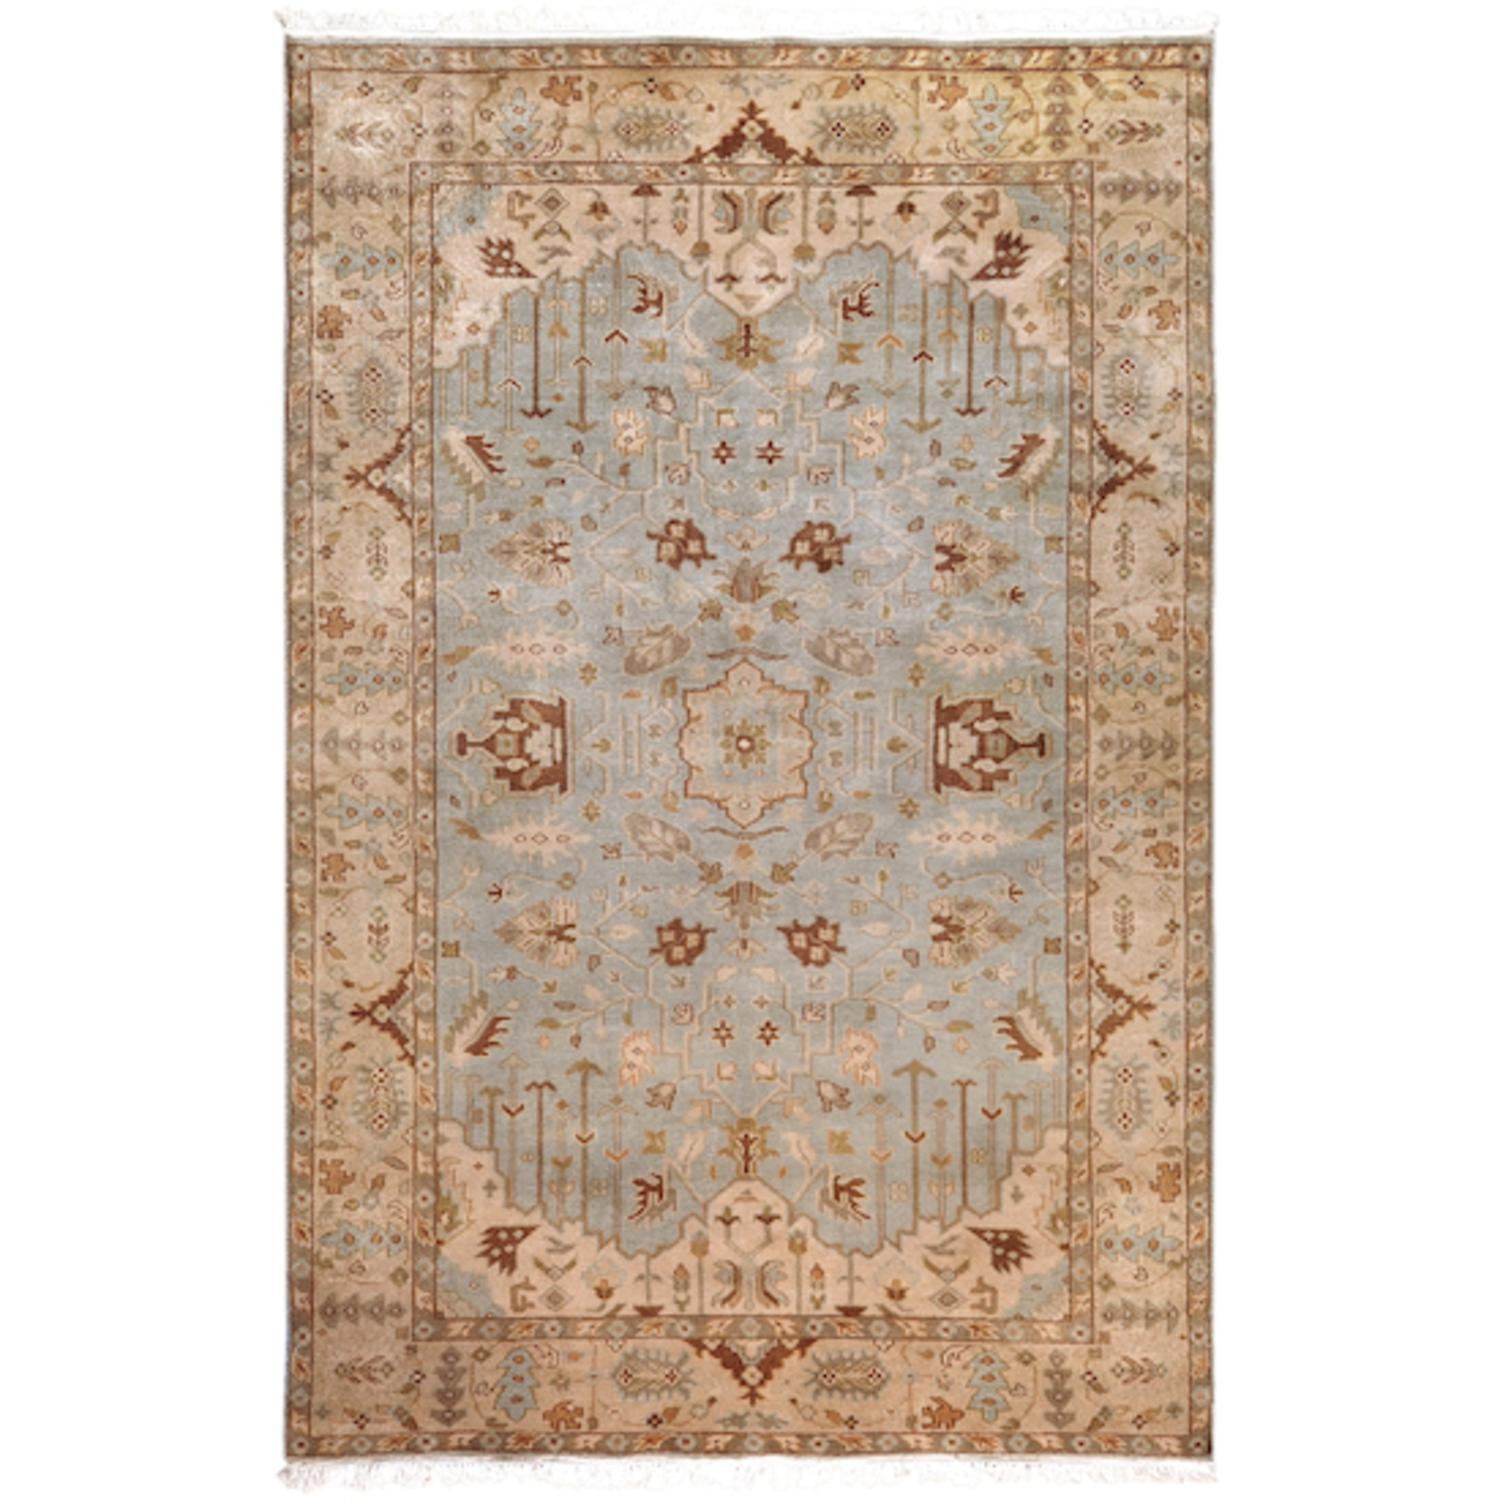 3.75' x 5.75' Beraber Taupe Beige, Fawn and Ecru Rectangular Wool Area Throw Rug